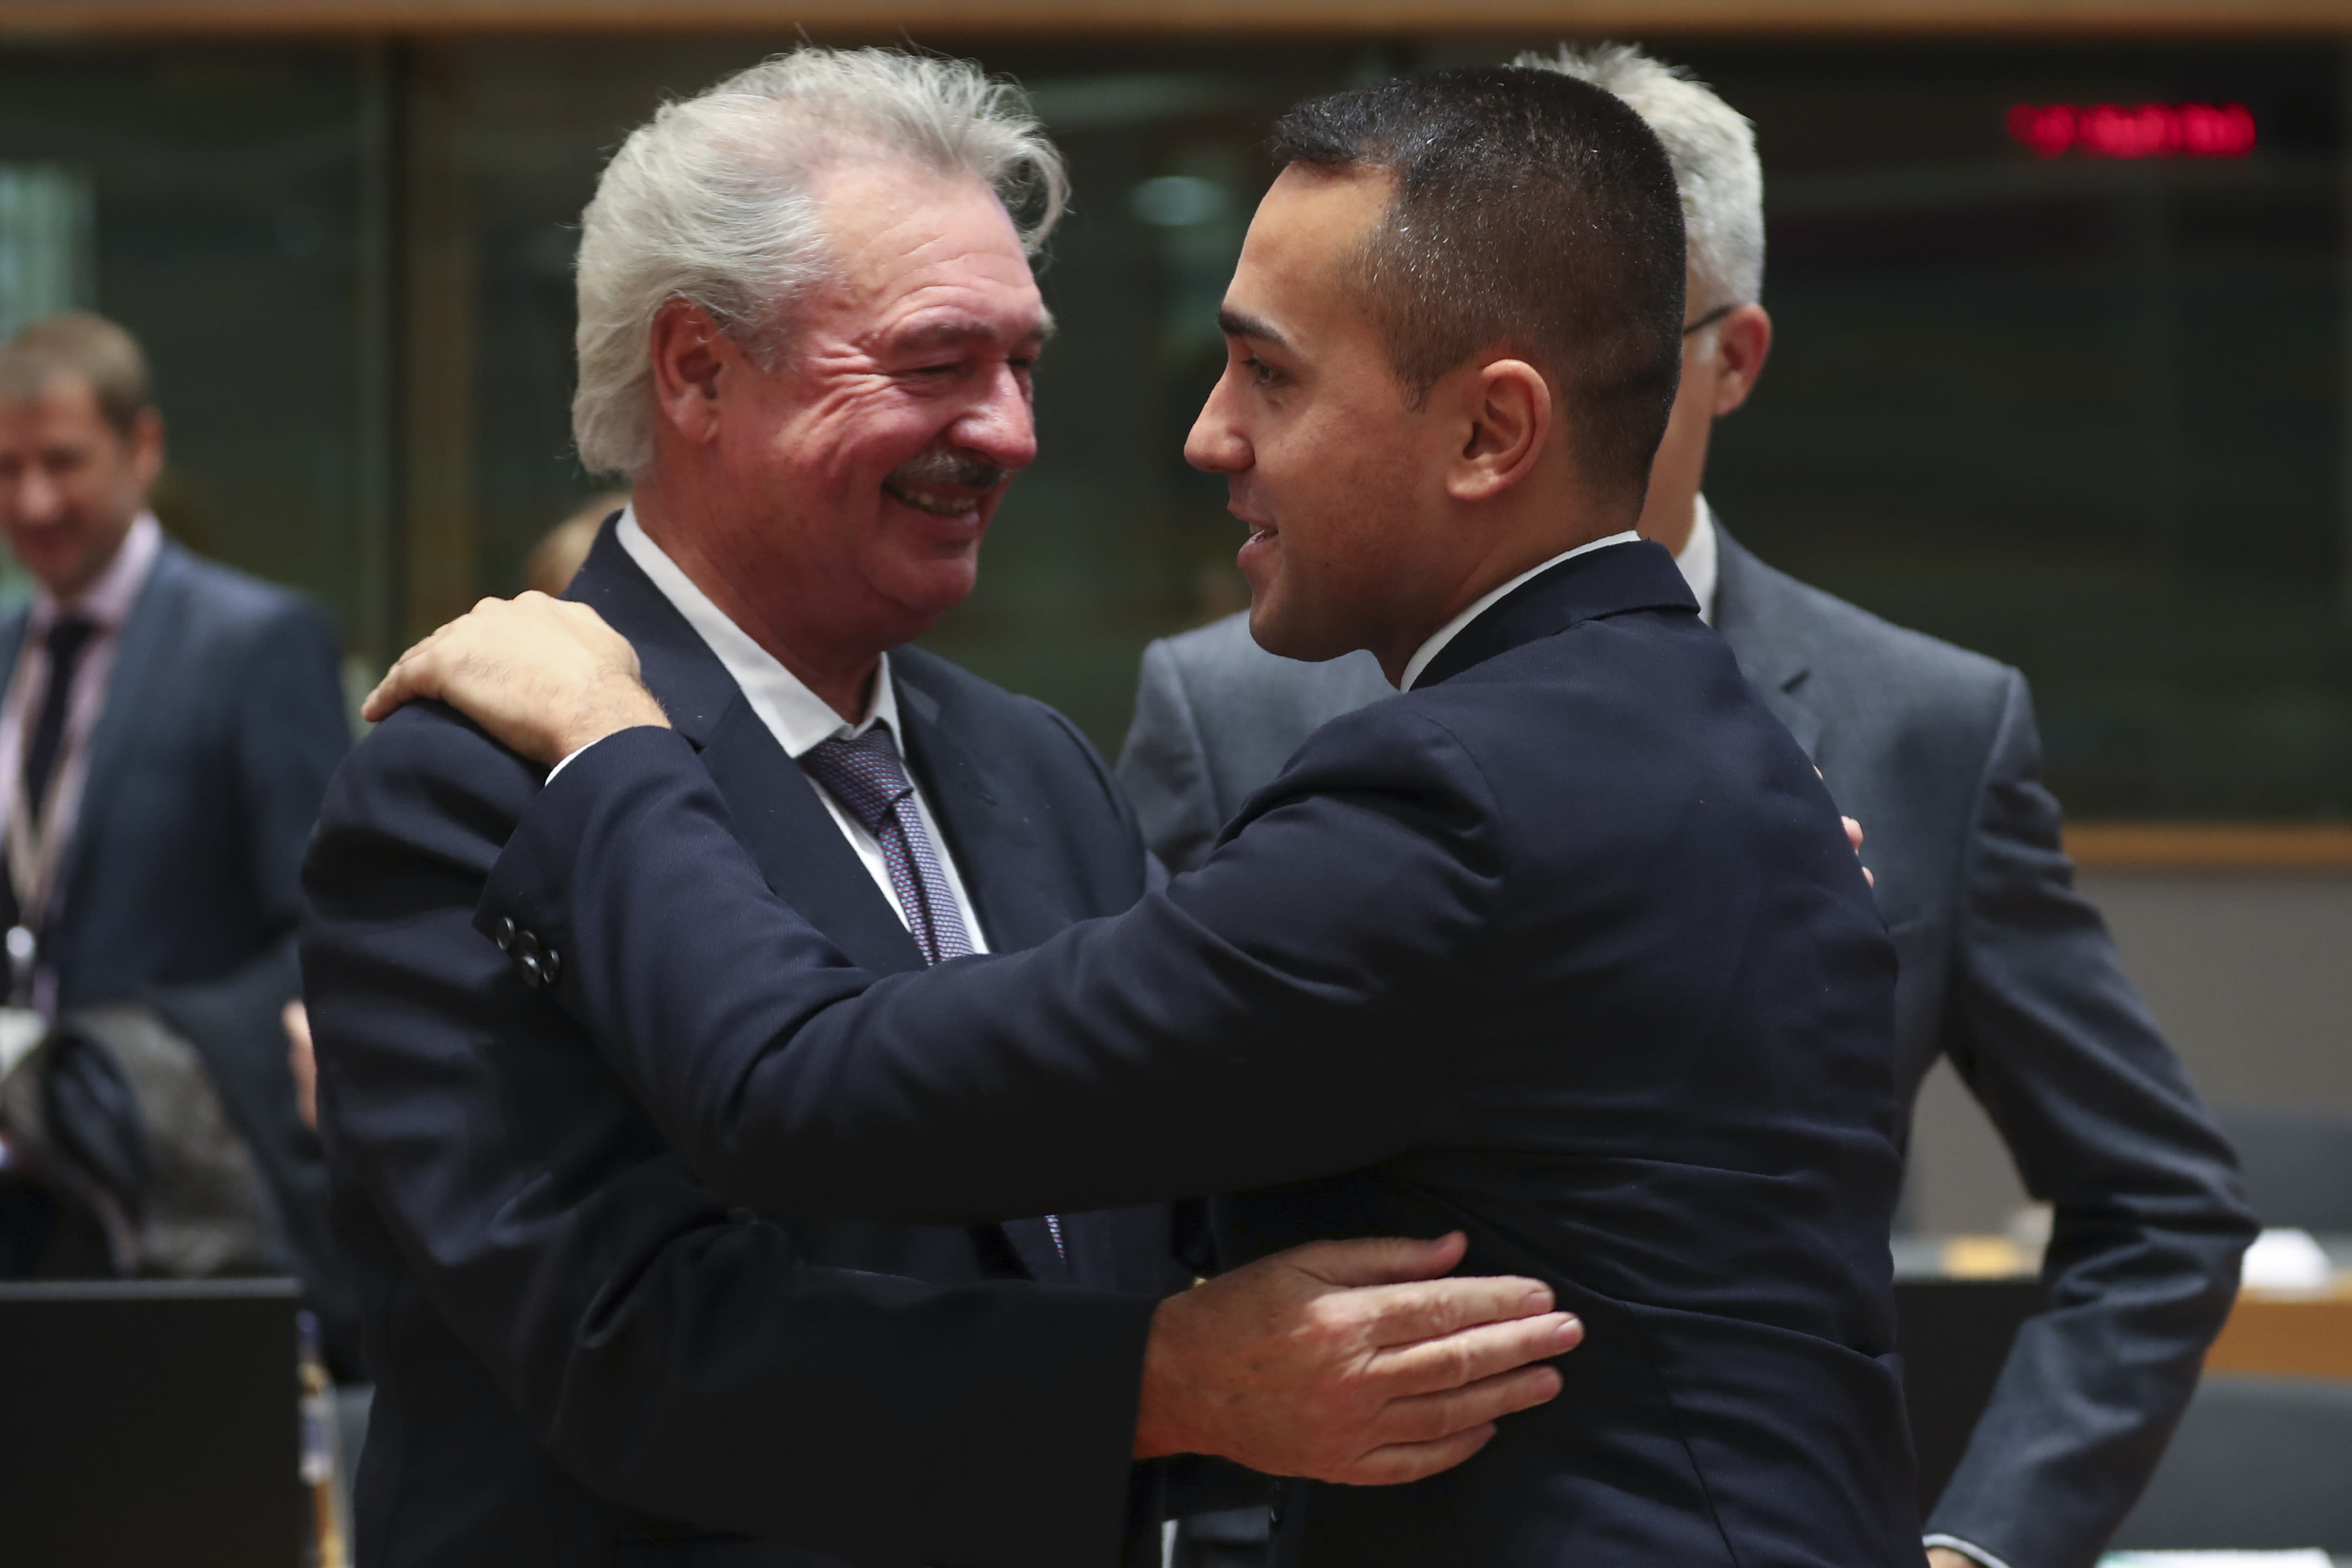 Italian Foreign Minister Luigi Di Maio, right, greets his Luxembourg counterpart Jean Asselborn an European Foreign Affairs Ministers meeting at the Europa building in Brussels, Monday, Nov. 11, 2019. European Union foreign ministers on Monday debated ways to keep the Iran nuclear deal intact after the Islamic Republic began enrichment work at its Fordo site in a fresh act of defiance that seems likely to spell the end of the painstakingly drafted international agreement. (AP Photo/Francisco Seco)